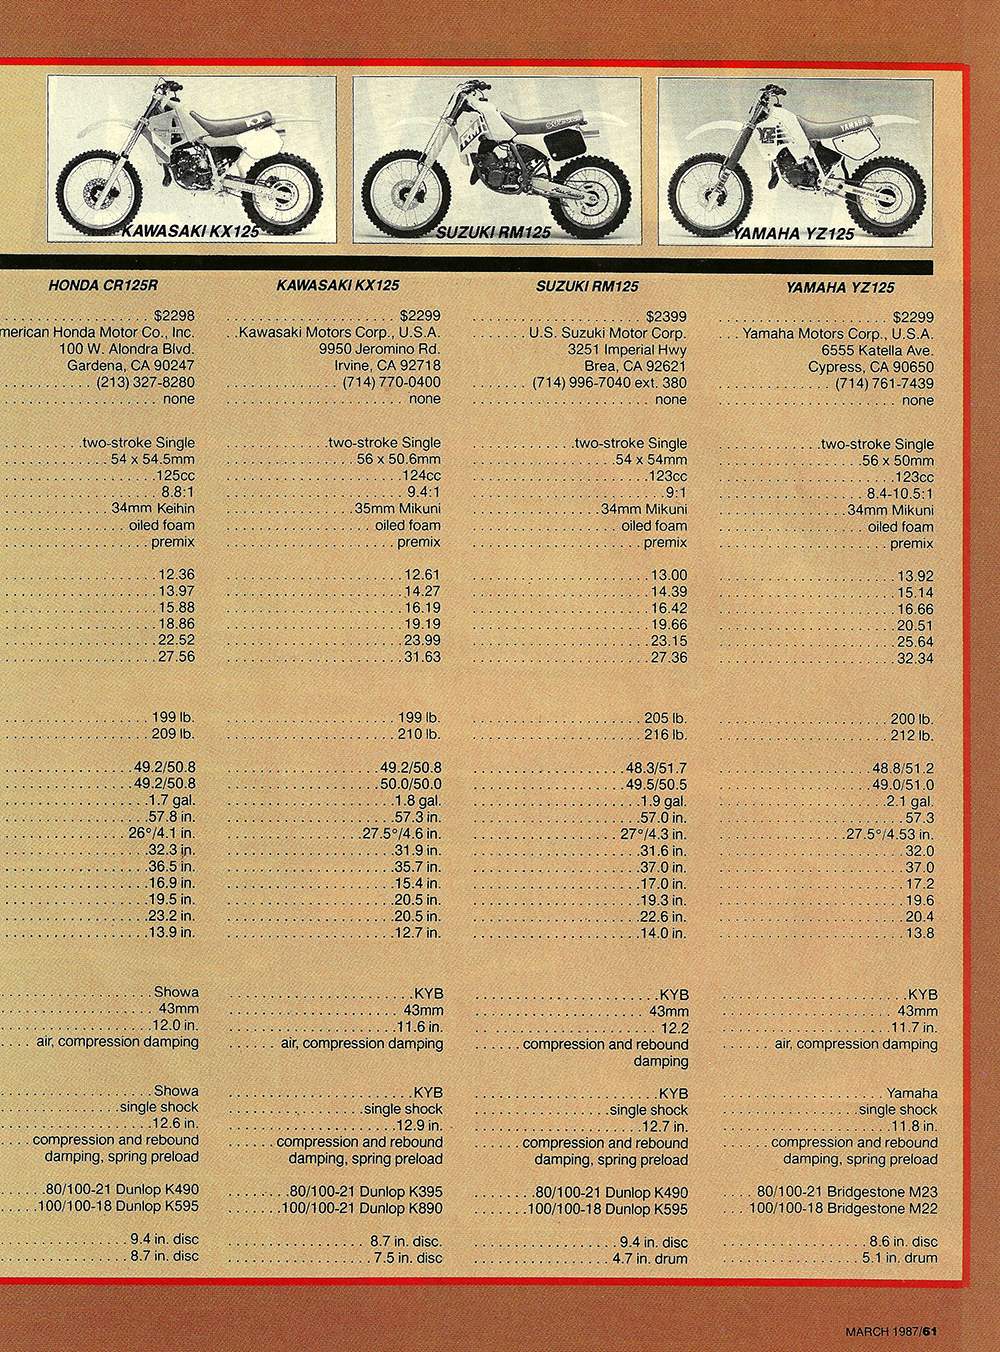 1987 Comparison KX125 vs RM125 vs Cagiva 125MX vs YZ125 vs CR125 road test 05.jpg